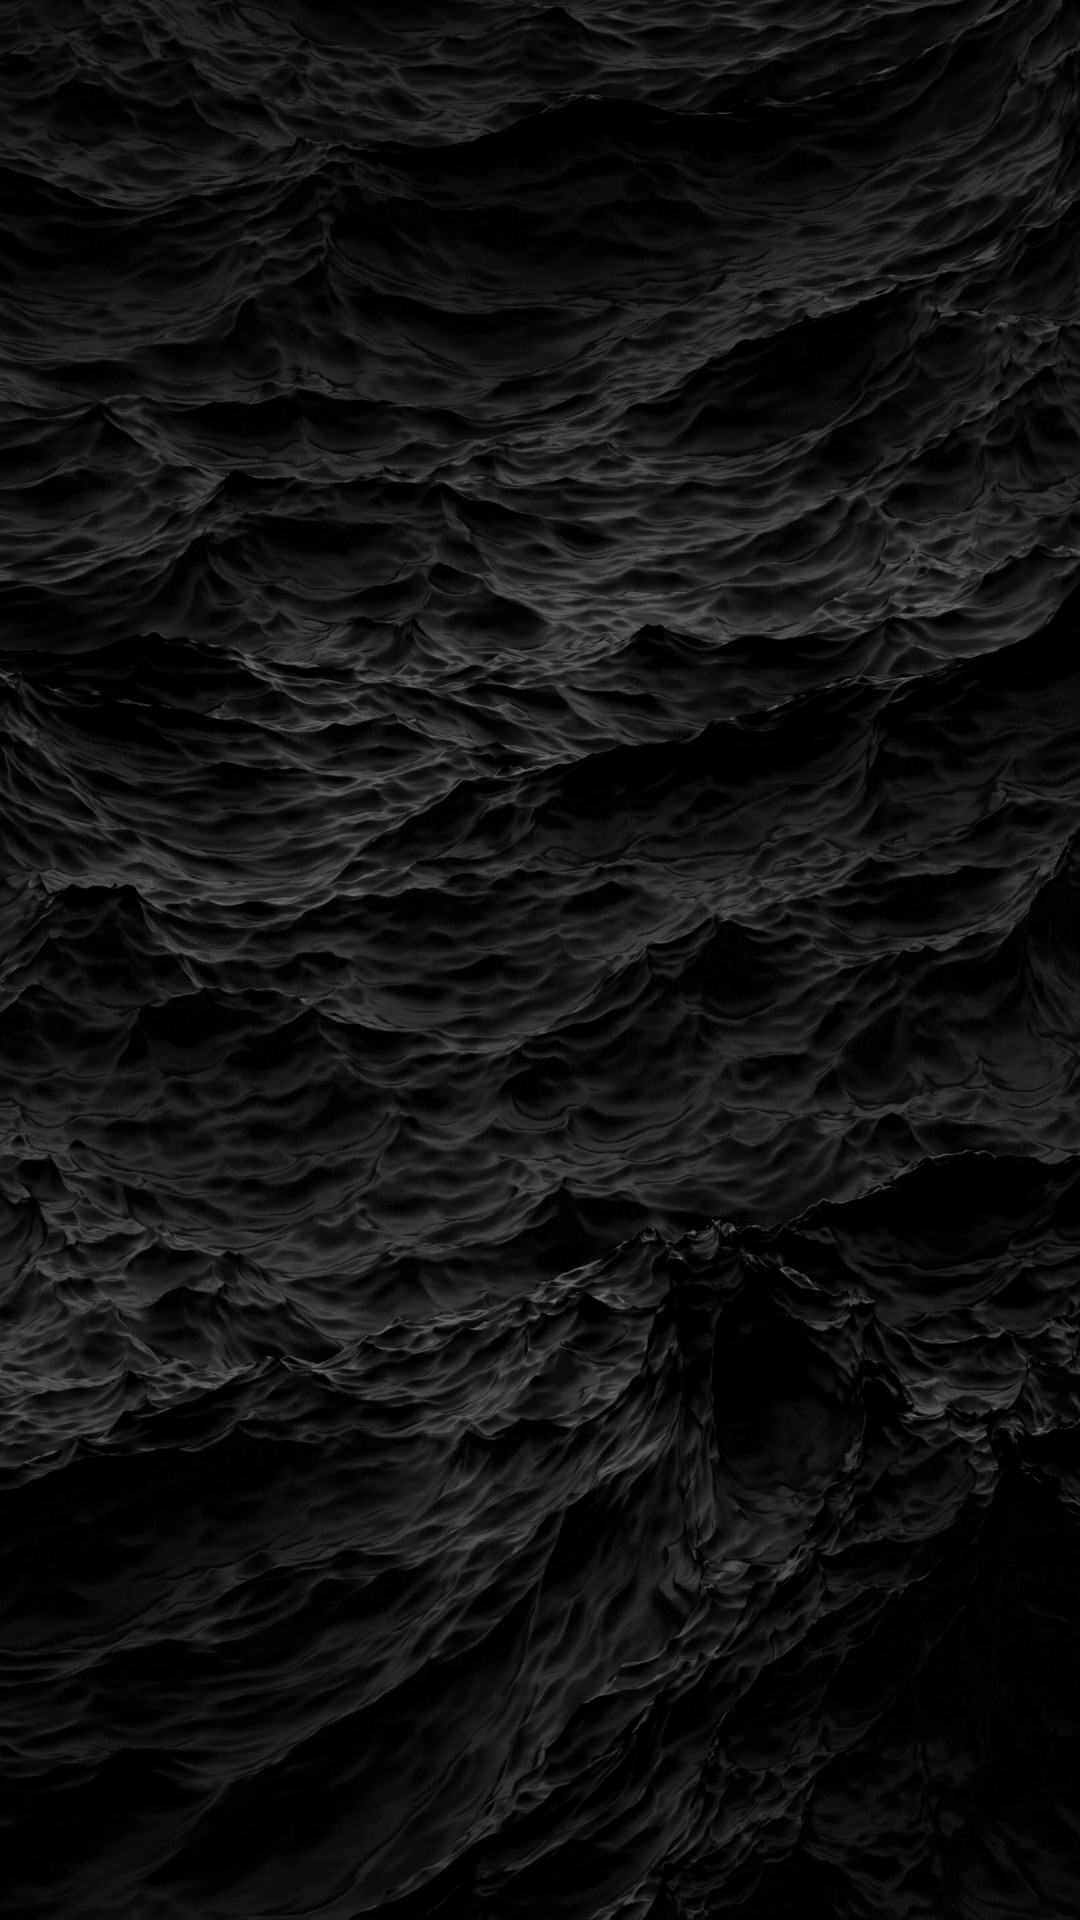 Black Waves Wallpaper for SAMSUNG Galaxy S5